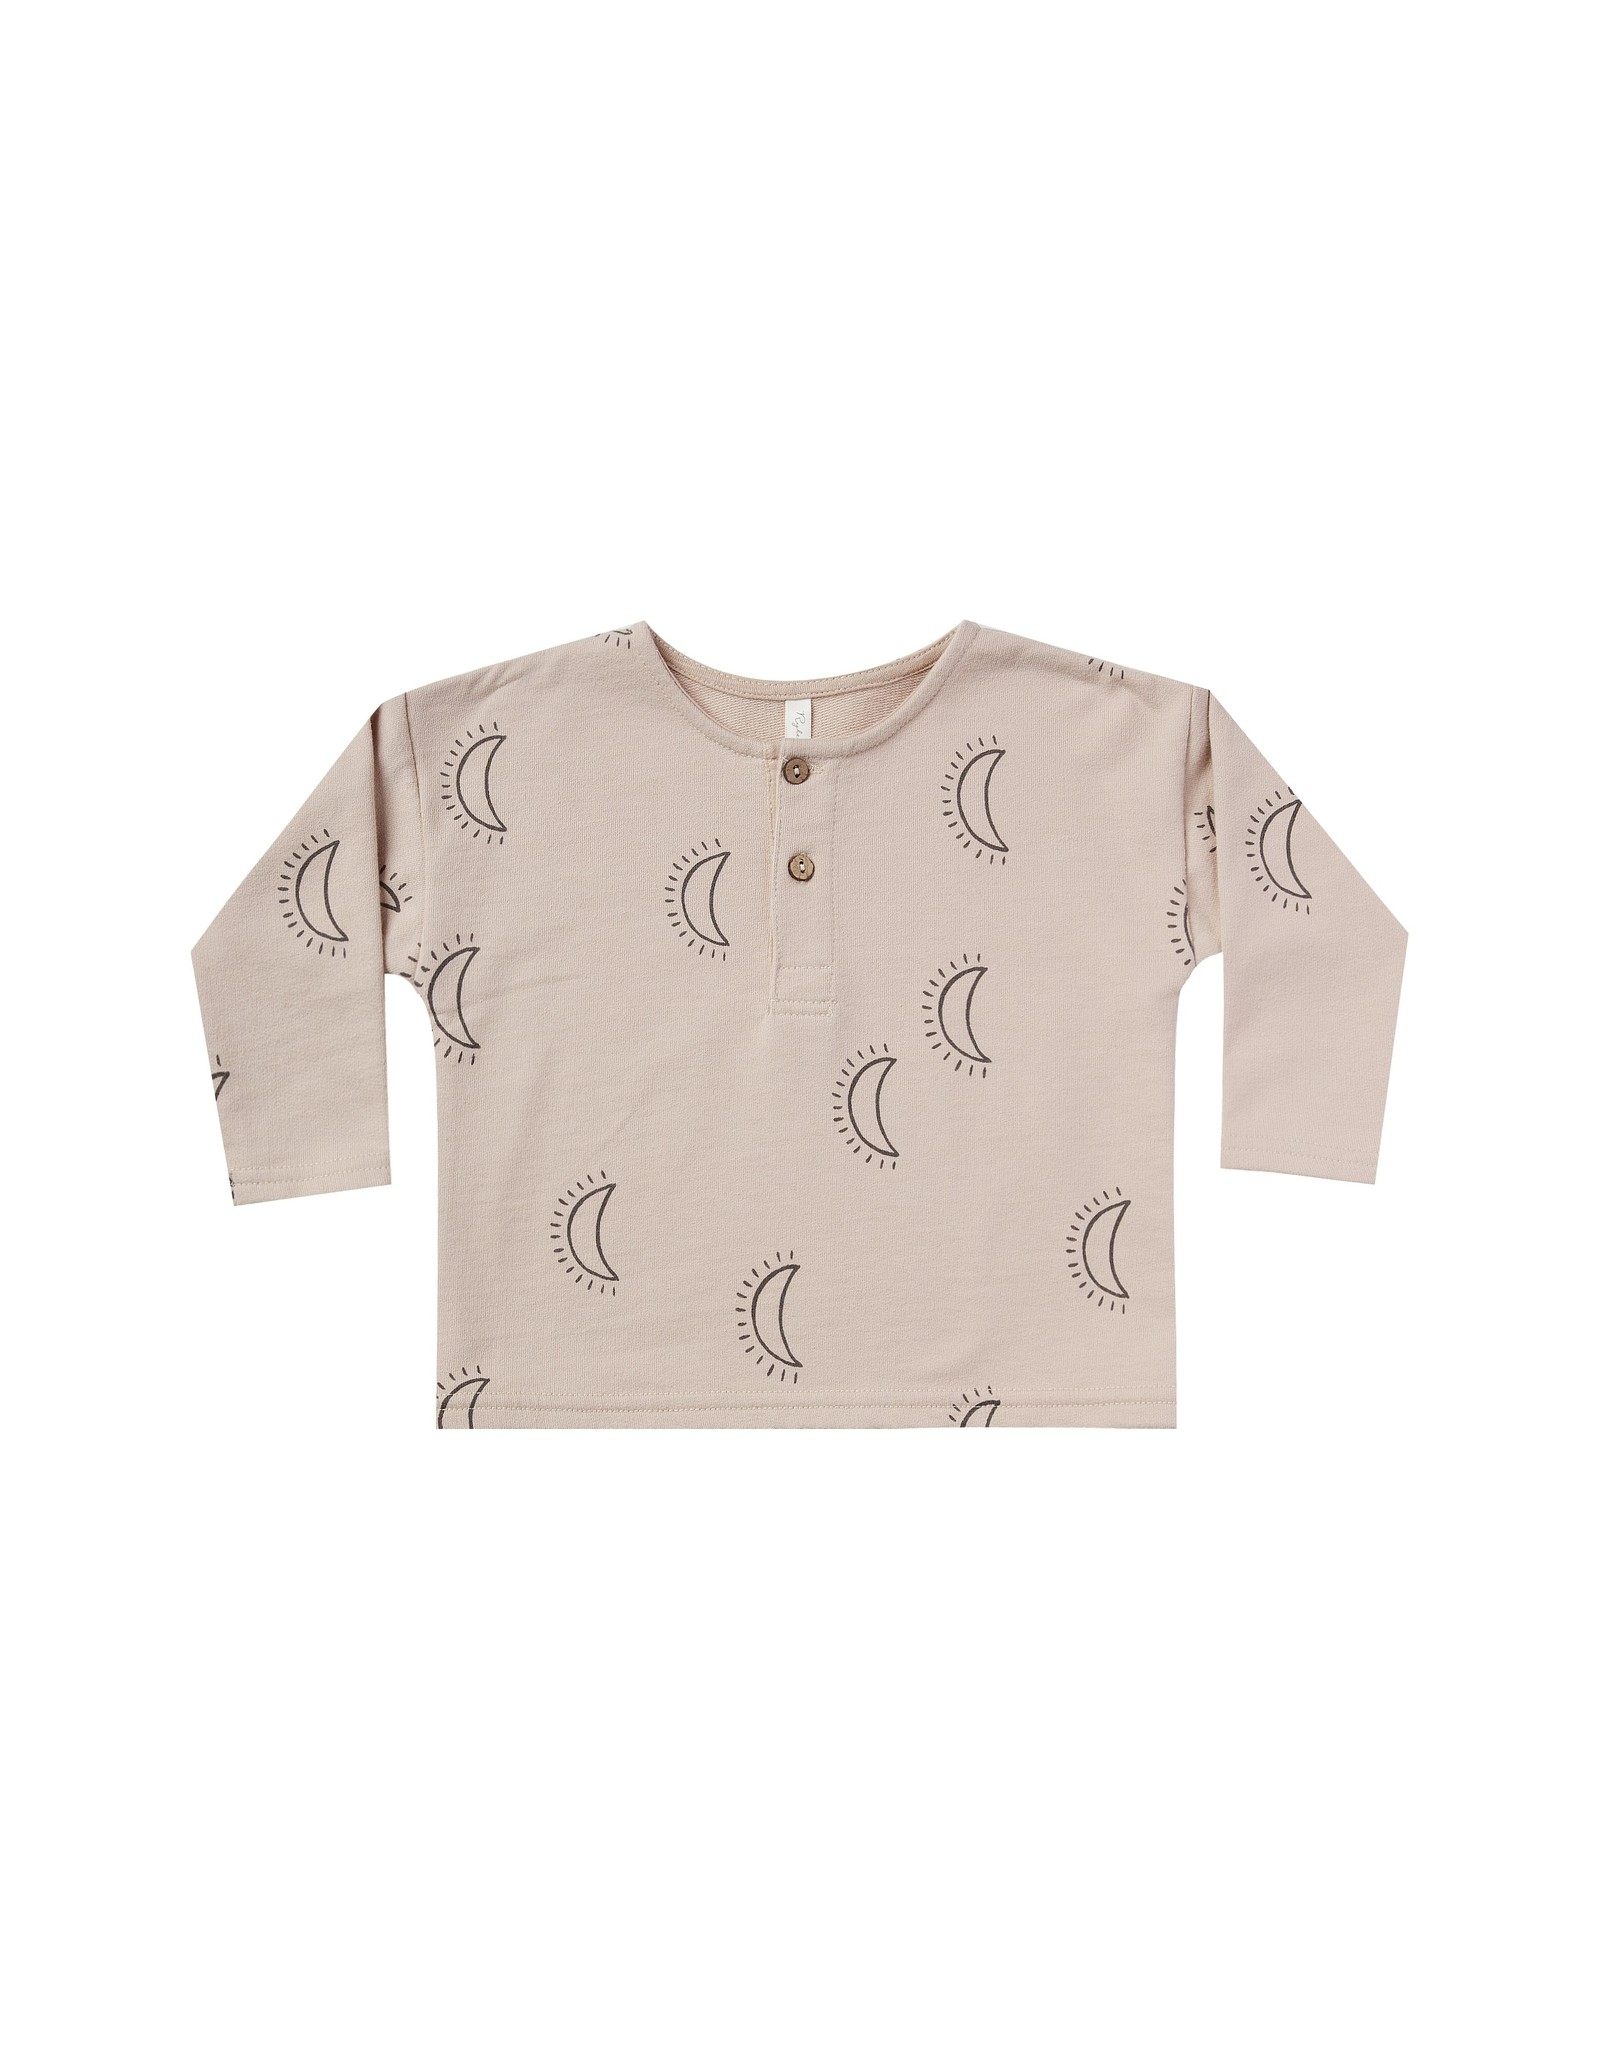 Rylee and Cru moons henley